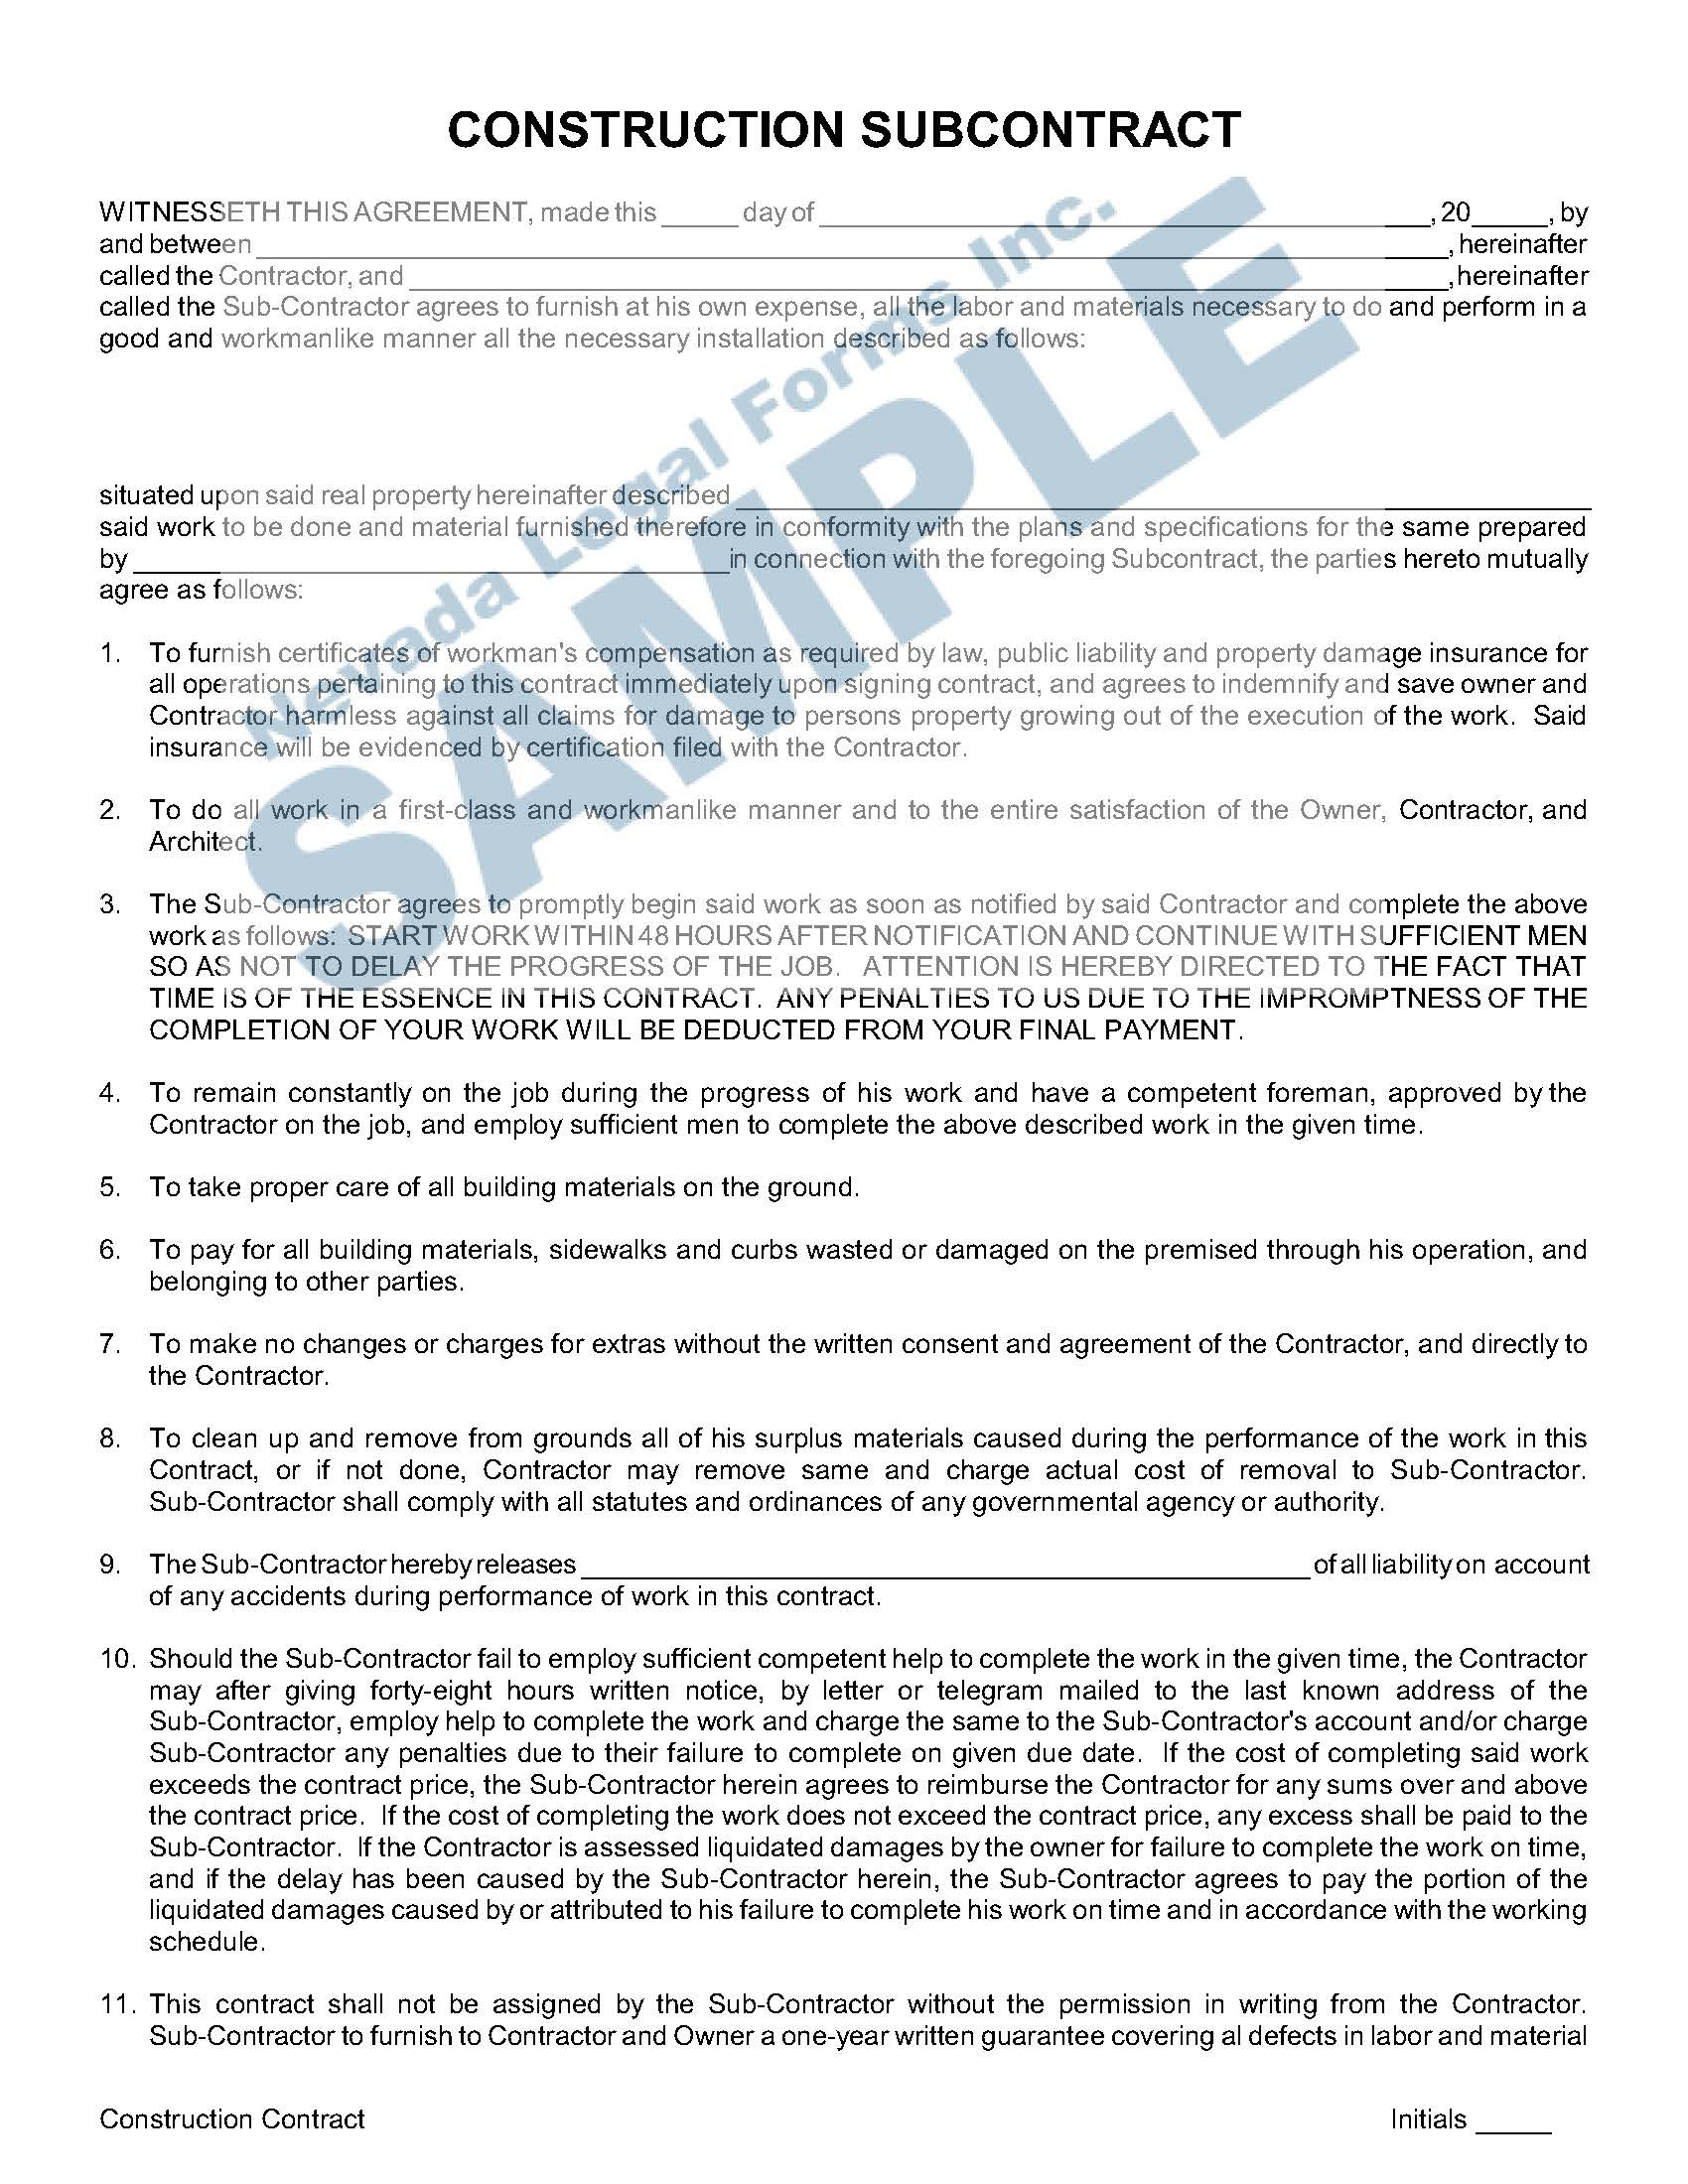 Construction Subcontract